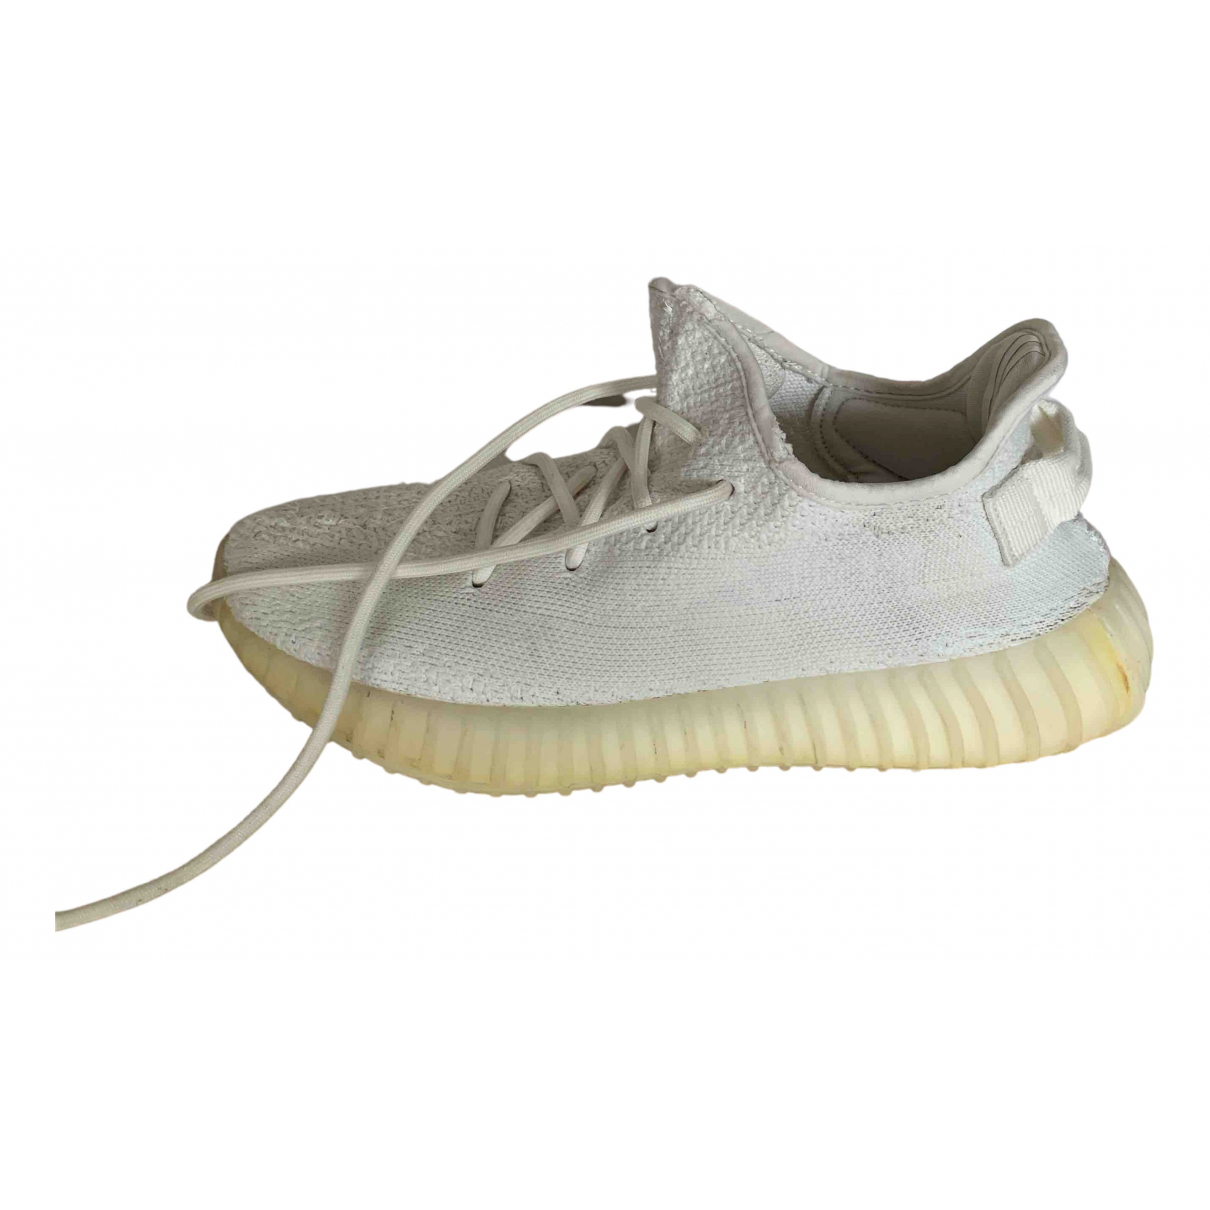 Yeezy X Adidas Boost 350 V2 White Cloth Trainers for Men 7.5 US